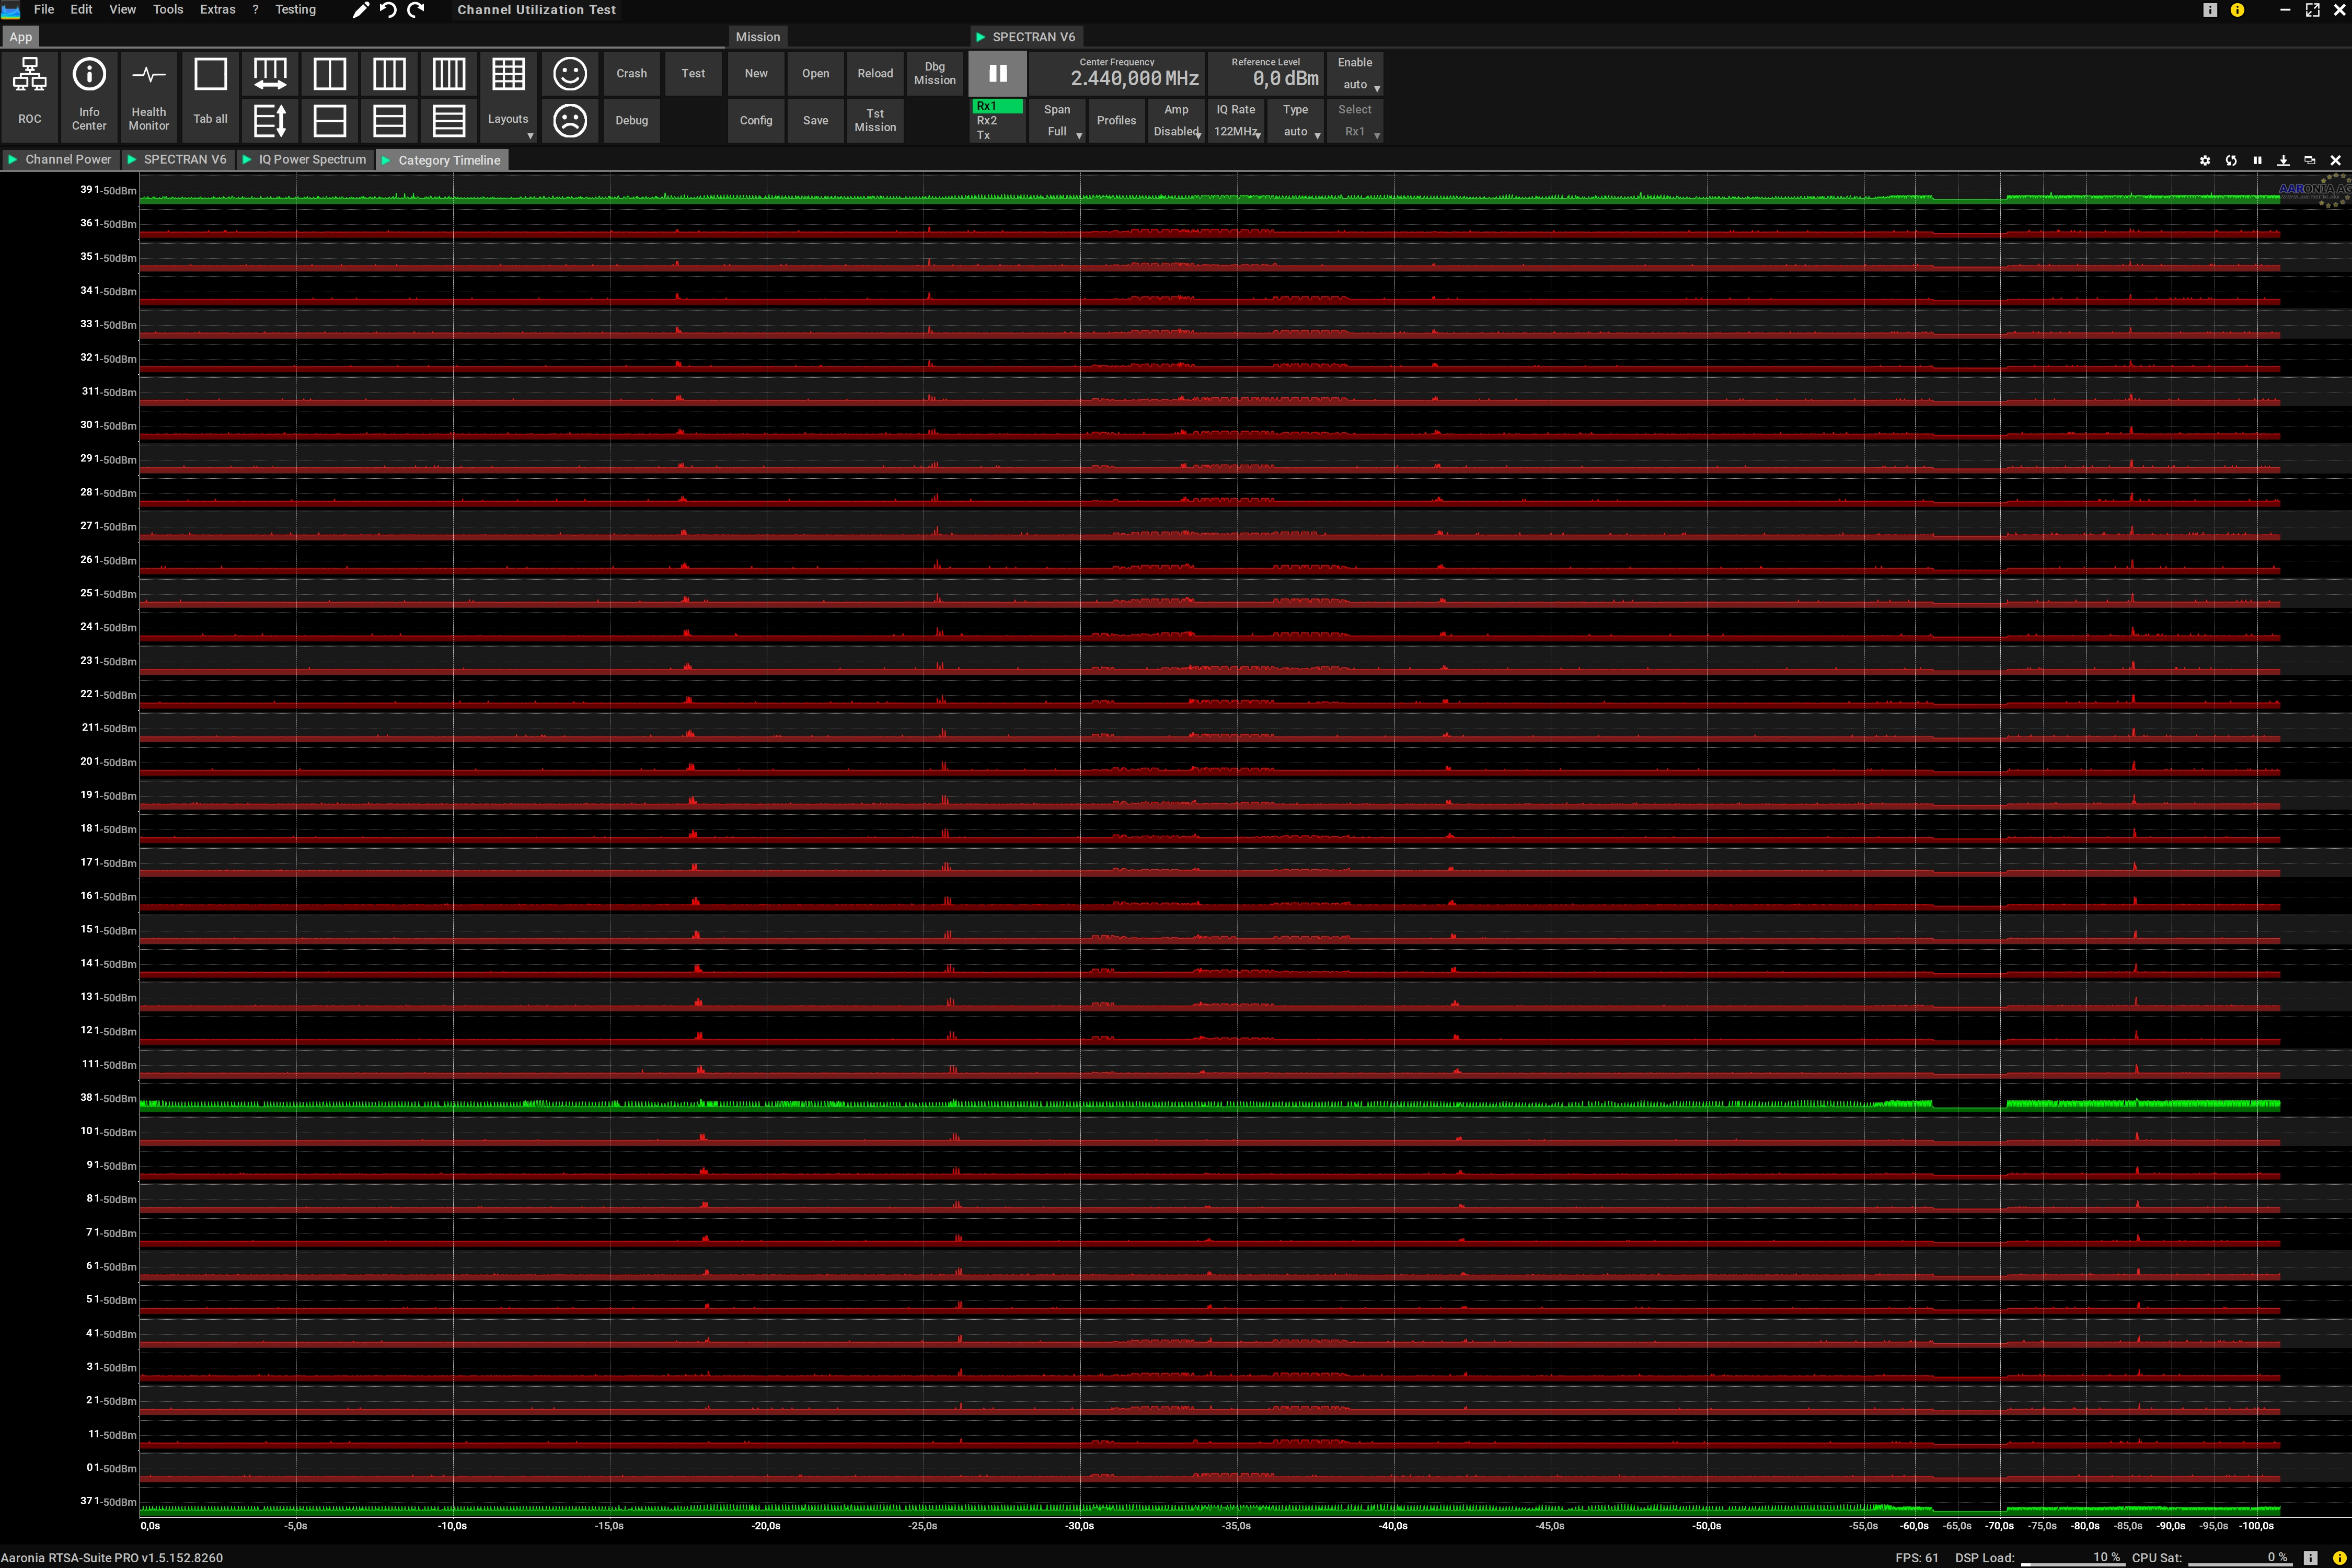 Bluetooth Channel Monitoring over Time